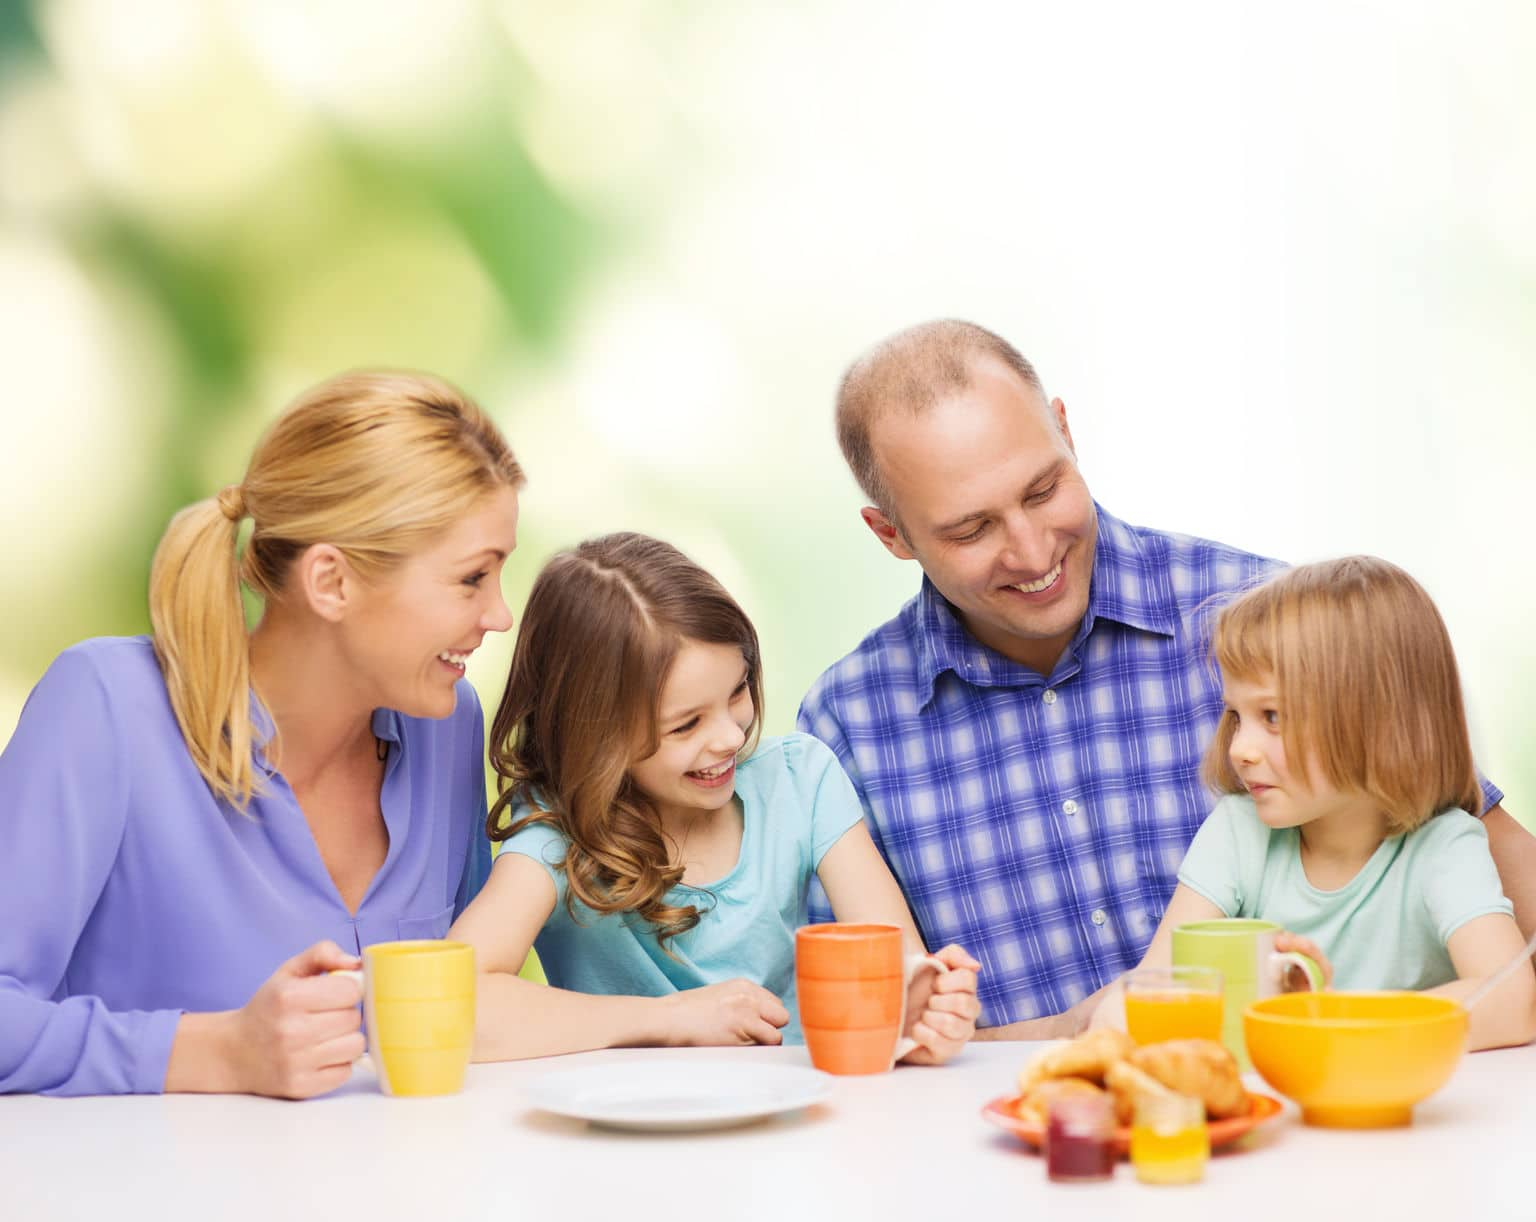 Positive reinforcement and a healthy environment will foster happy relationships between kids and their parents.